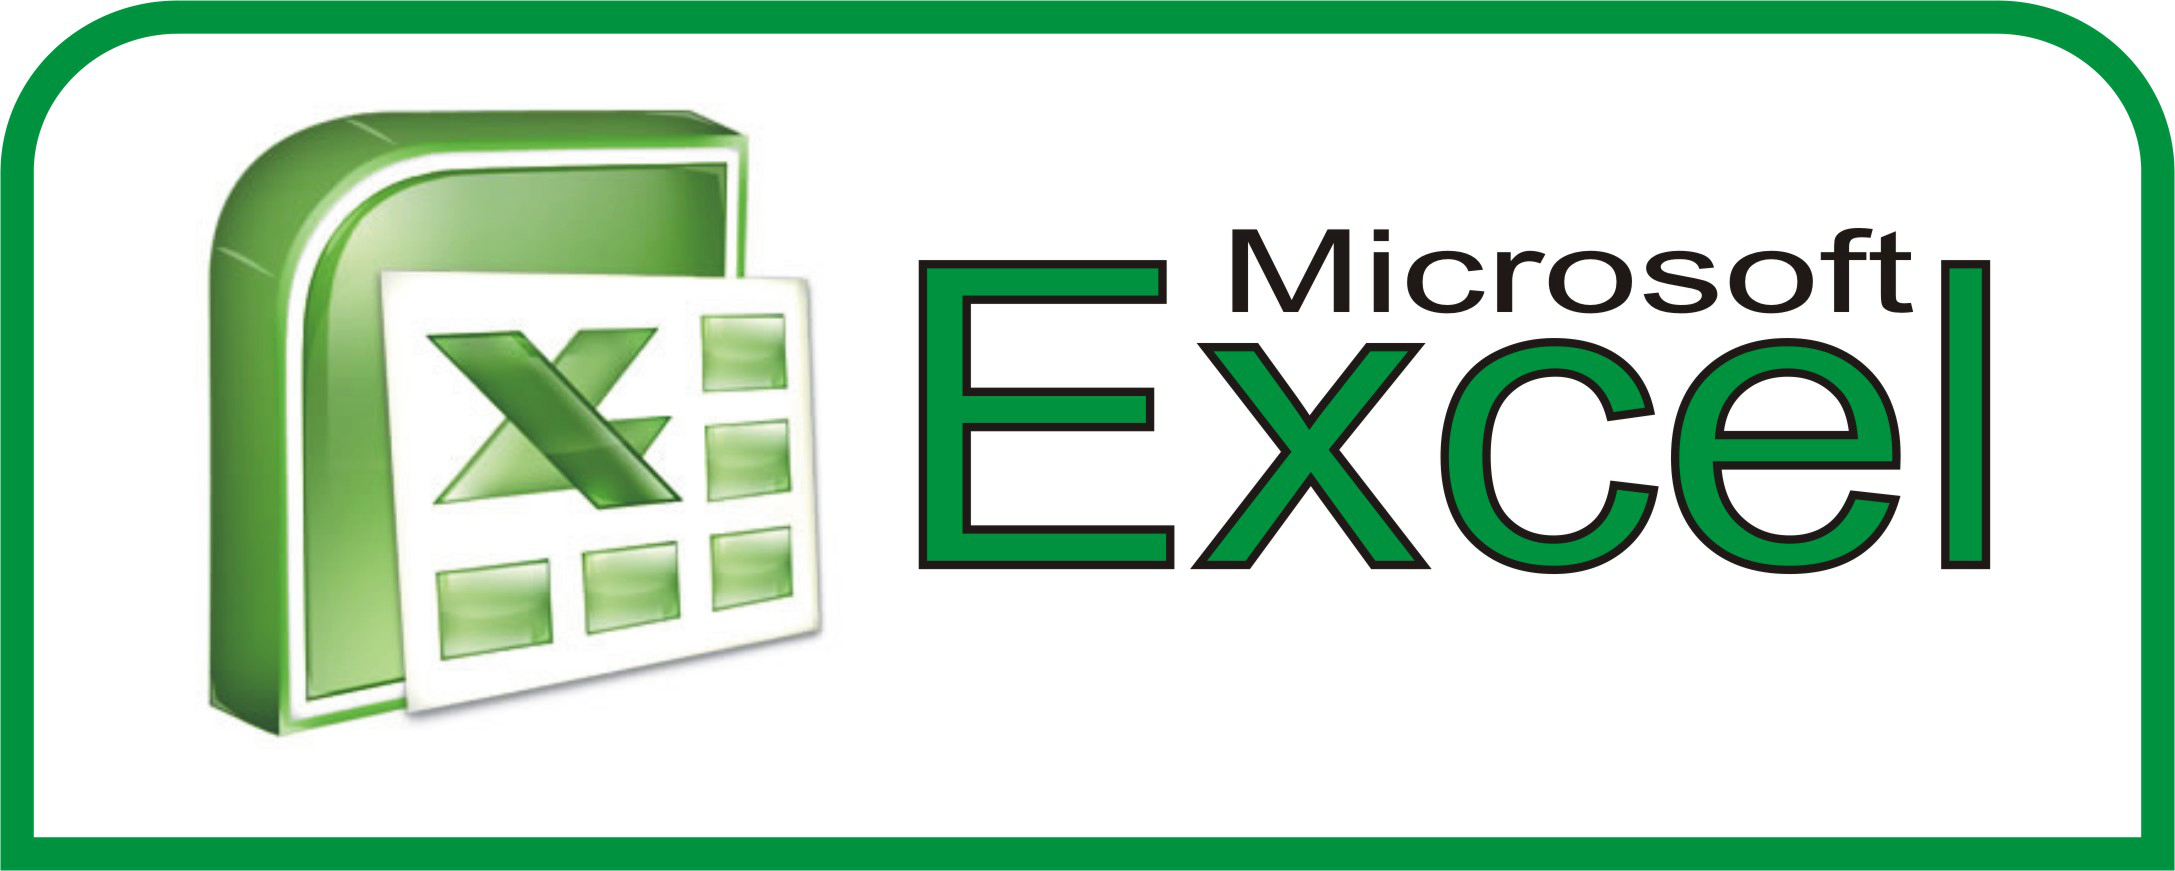 Ediblewildsus  Unusual  Excel Shortcuts You Probably Didnt Know About  Techdissected With Hot Shortcut For Filter In Excel  Besides Unprotect Excel  Workbook Furthermore Ipad Excel App With Cool Excel Checkbox Column Also Advanced Excel Certification Online In Addition Free Excel Spreadsheet Download And What Does Pmt Mean In Excel As Well As Word To Excel Converter Free Software Download Additionally Symbol For Approximately In Excel From Techdissectedcom With Ediblewildsus  Hot  Excel Shortcuts You Probably Didnt Know About  Techdissected With Cool Shortcut For Filter In Excel  Besides Unprotect Excel  Workbook Furthermore Ipad Excel App And Unusual Excel Checkbox Column Also Advanced Excel Certification Online In Addition Free Excel Spreadsheet Download From Techdissectedcom